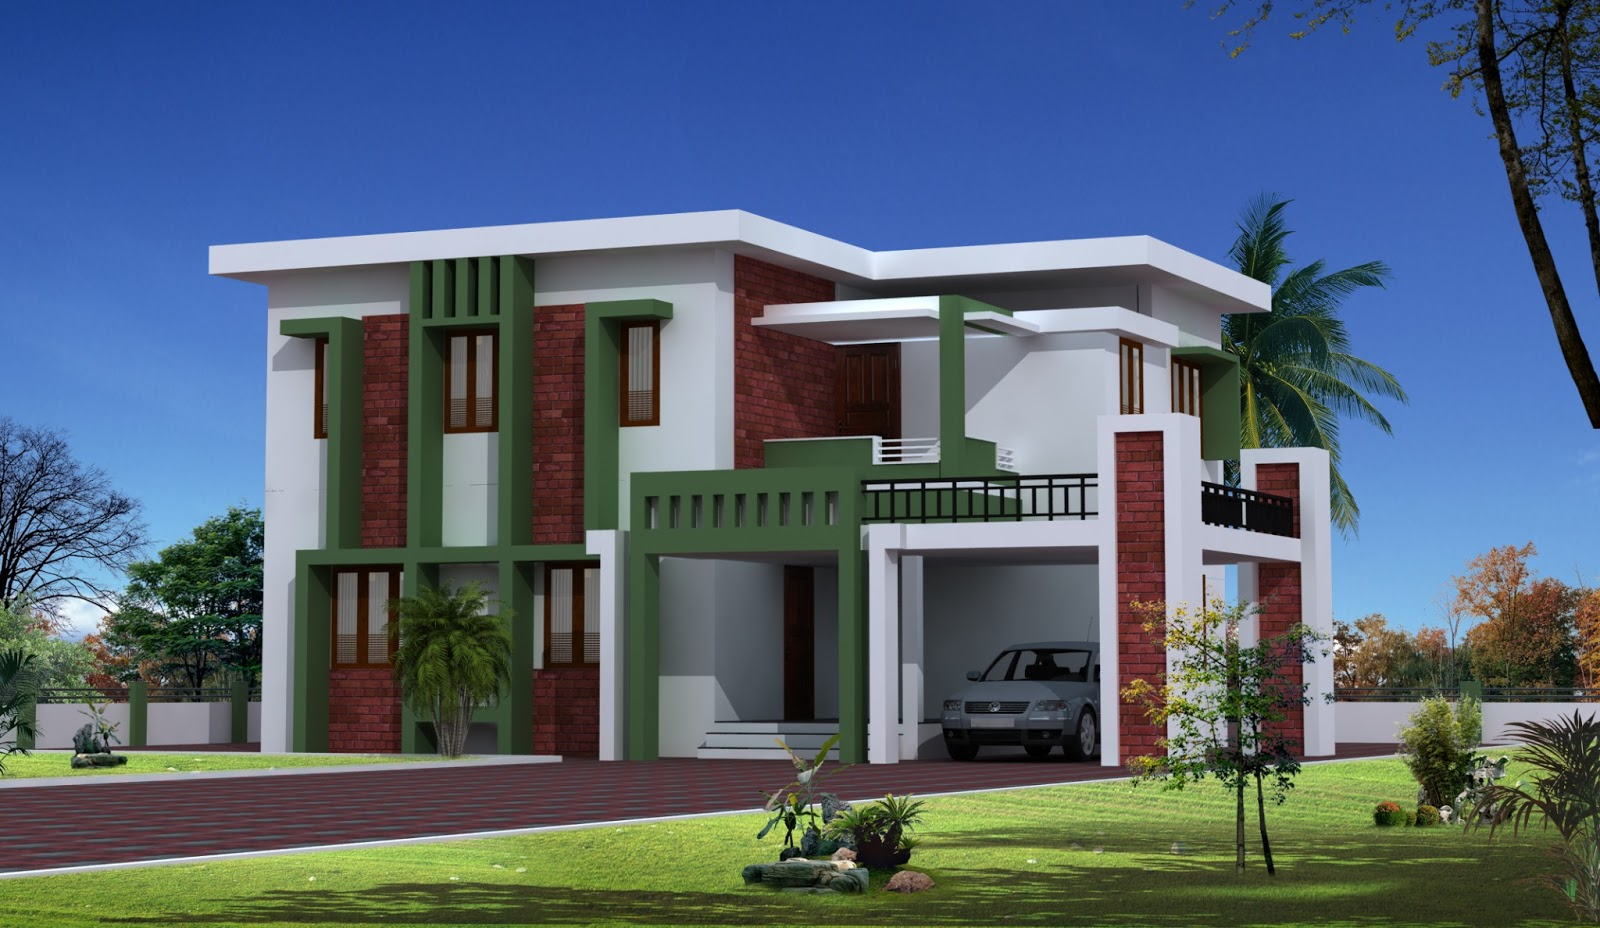 Build a building latest home designs My home design build